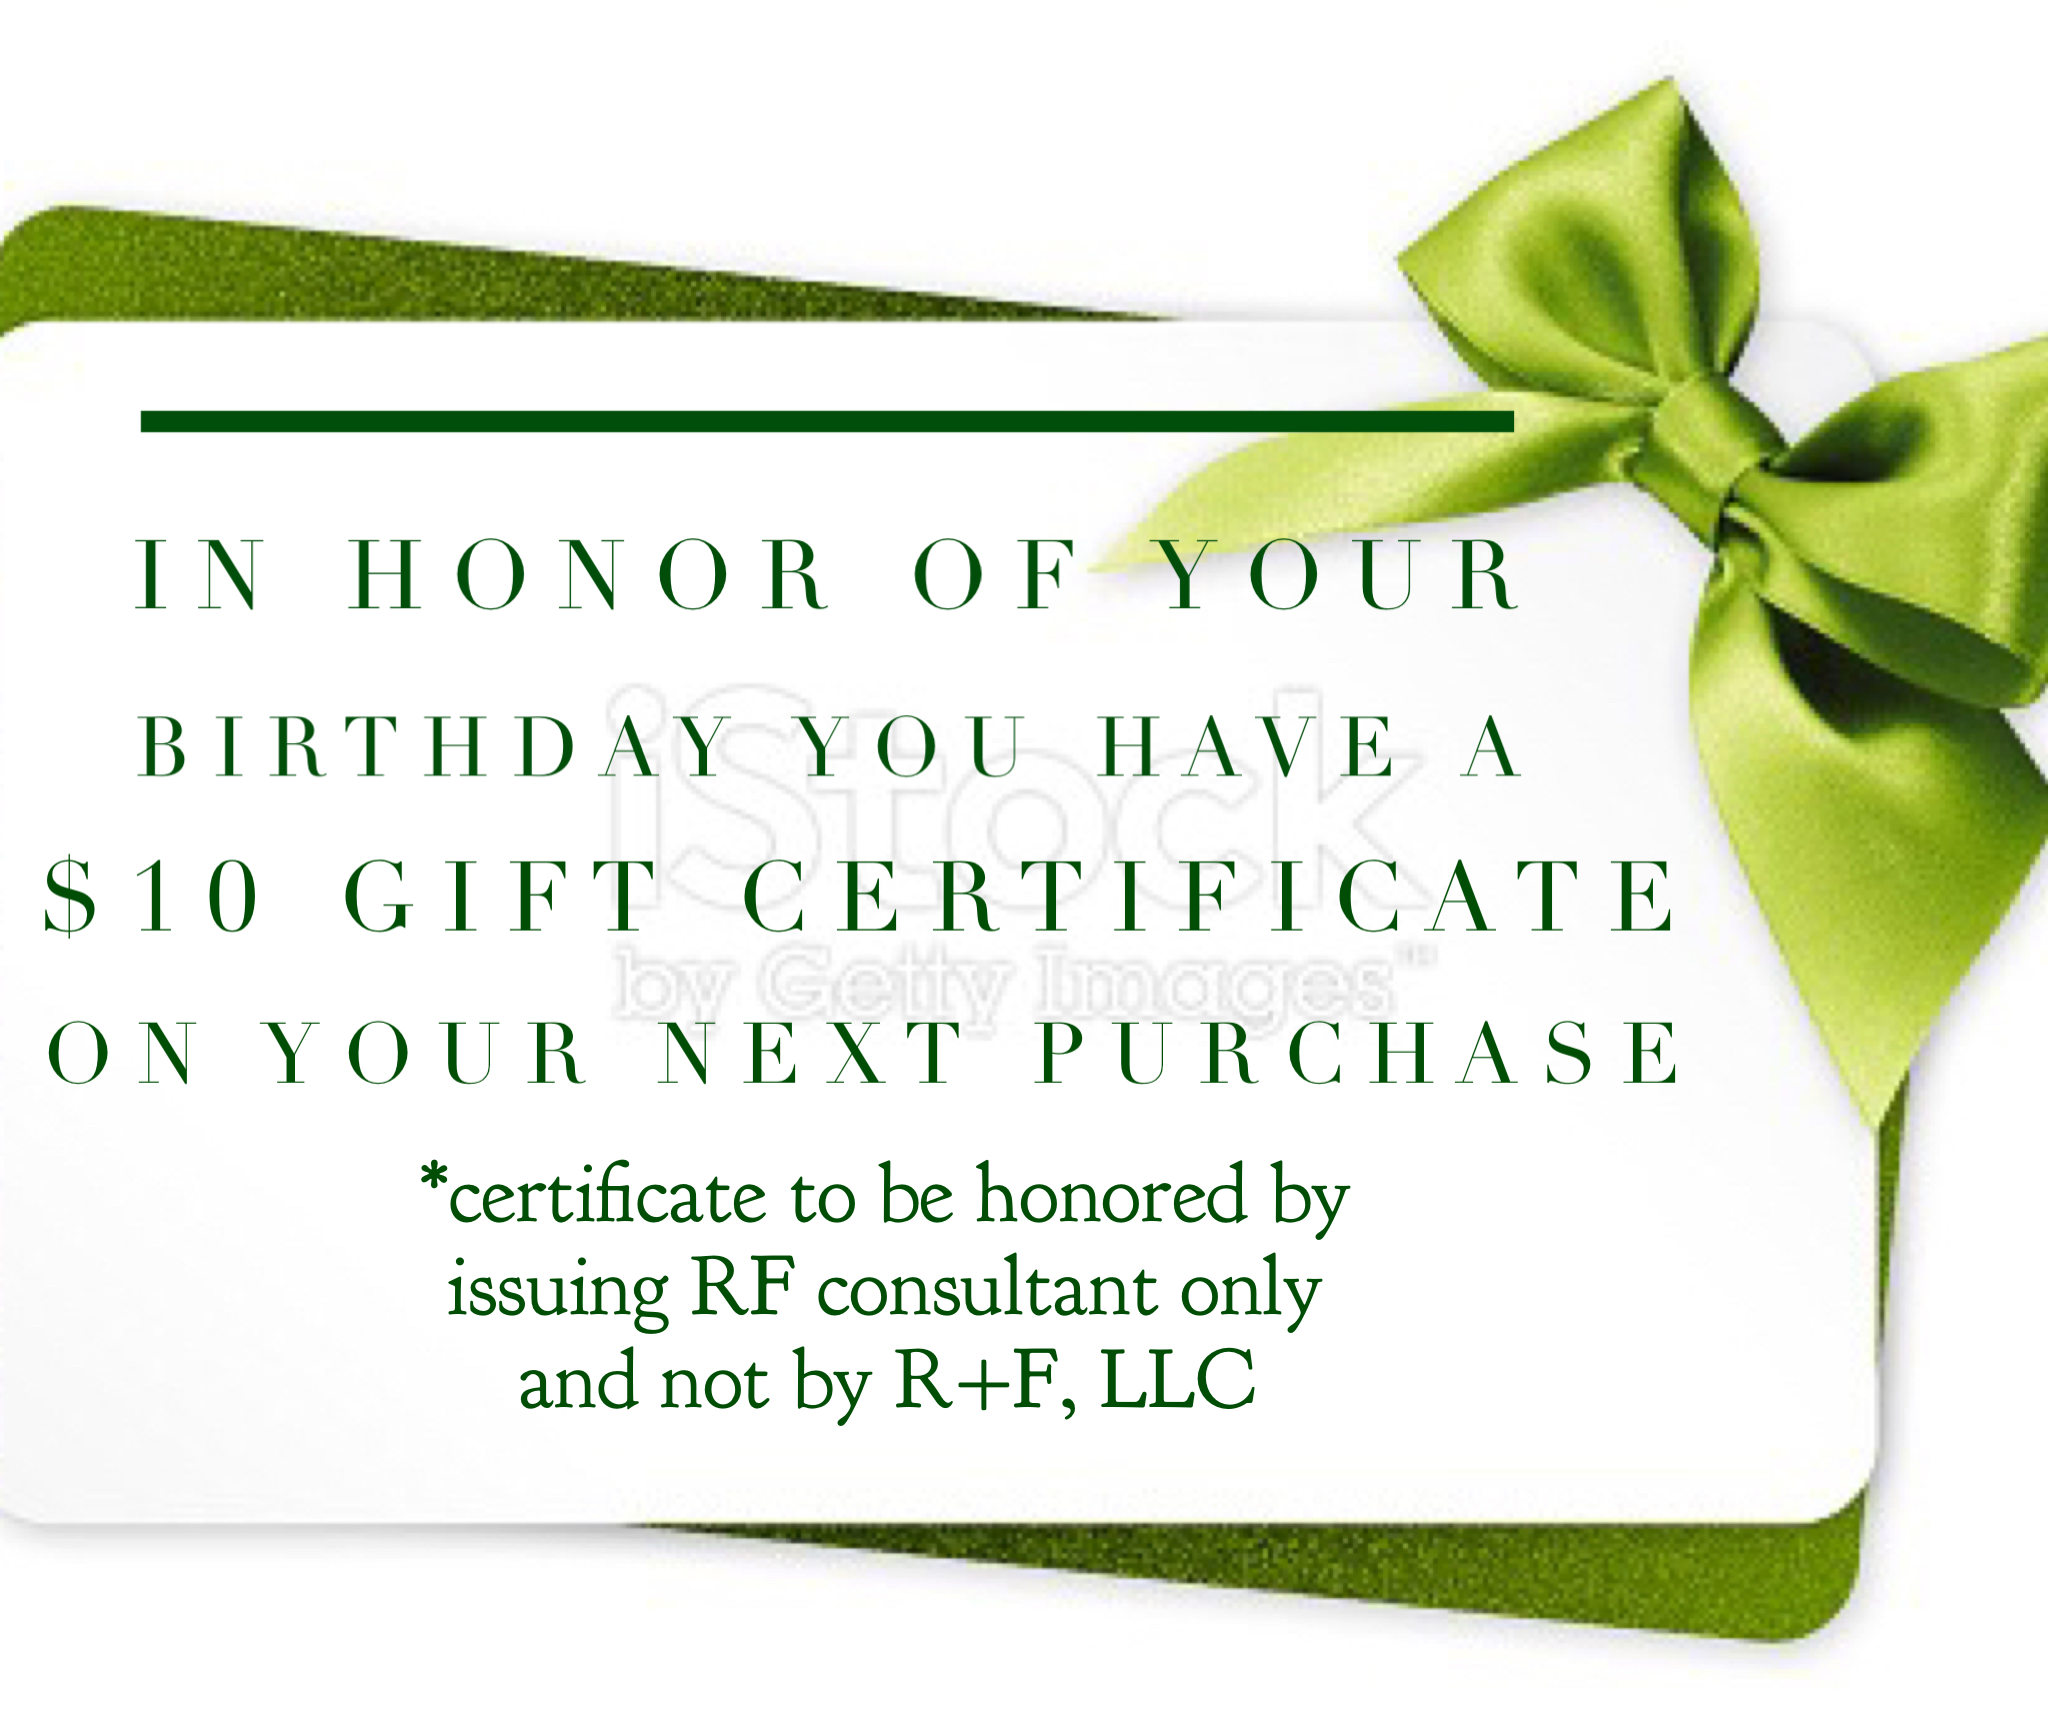 17 best ideas about online gift certificates online 17 best ideas about online gift certificates online gift cards rodan and fields products and rodan and fields business